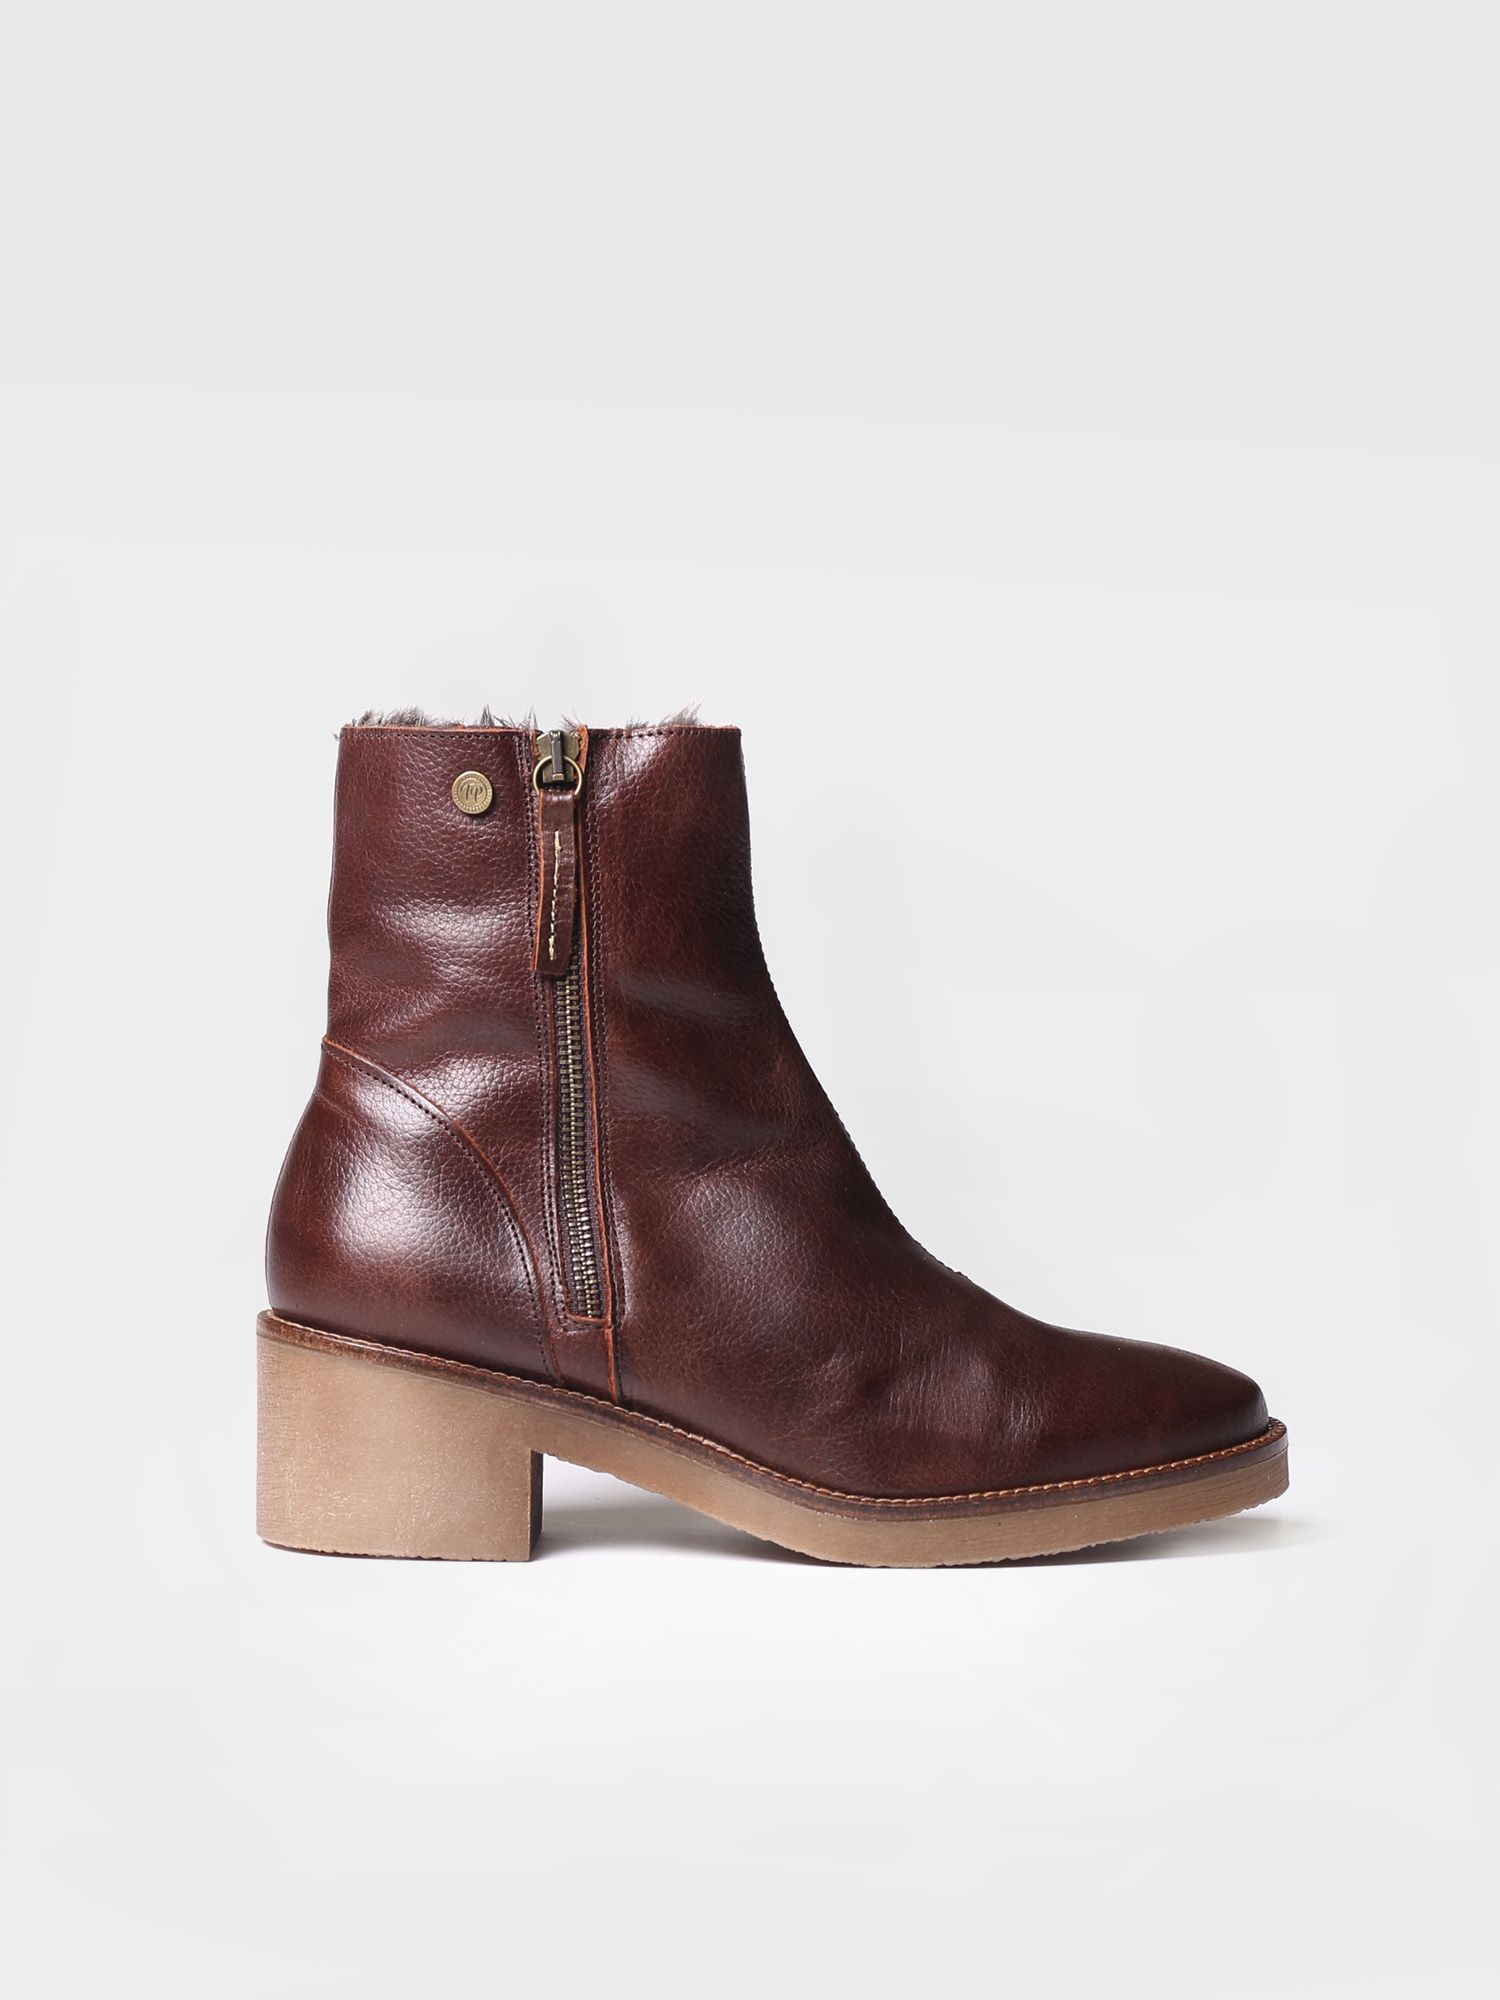 Ankle boot for women made of brown leather - PRATO-POF